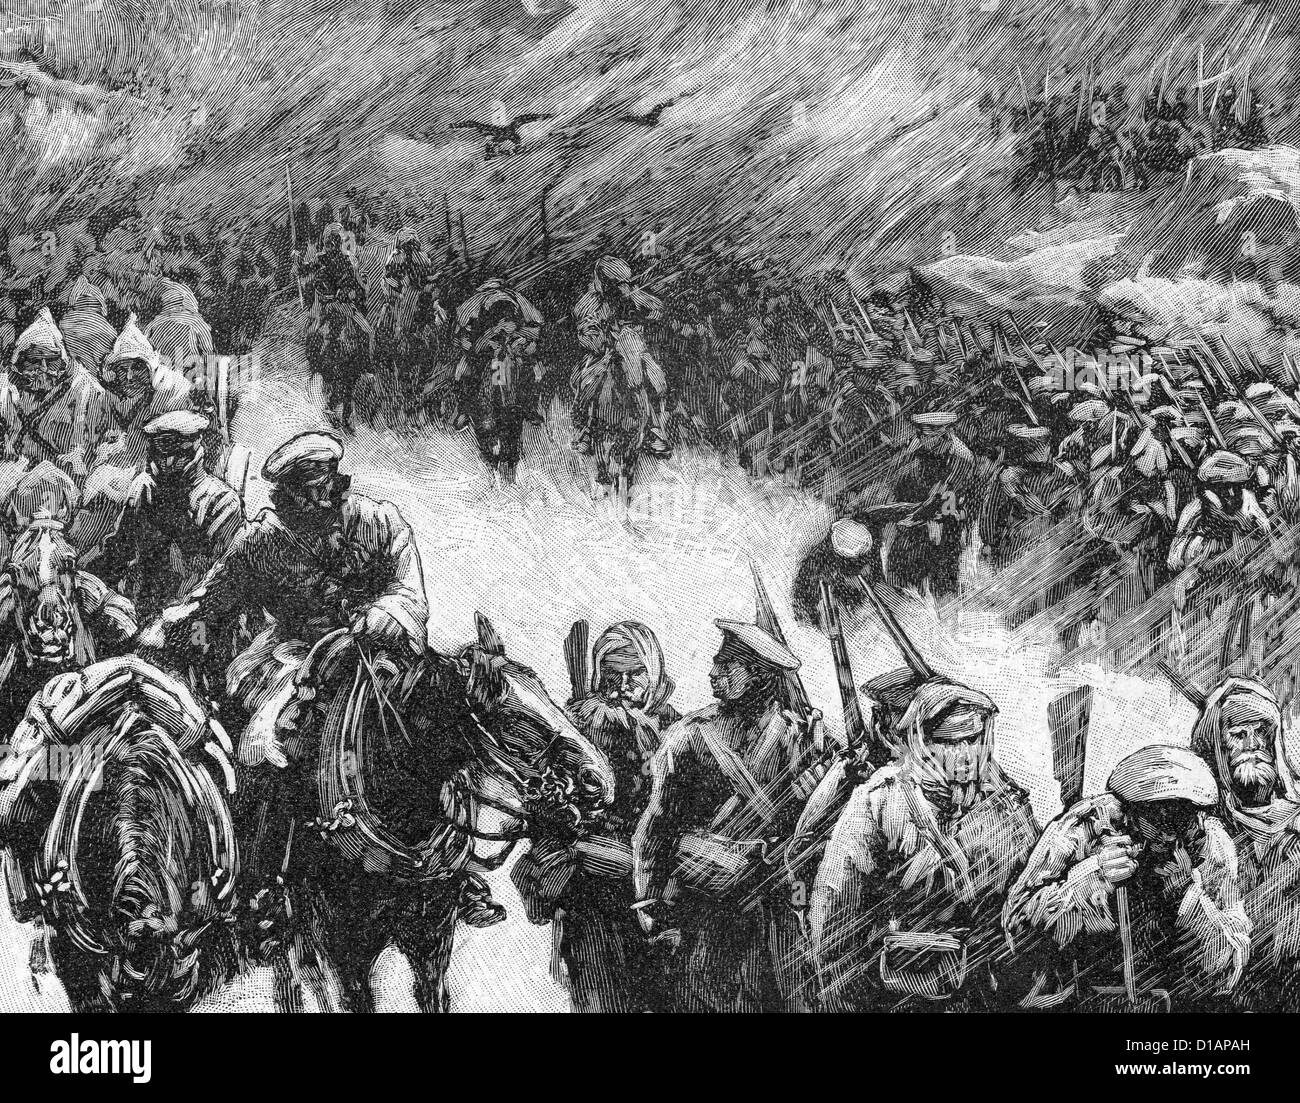 RUSSO-TURKISH WAR 1877-1878. Russian soldiers crossing the Balkans in winter - Stock Image